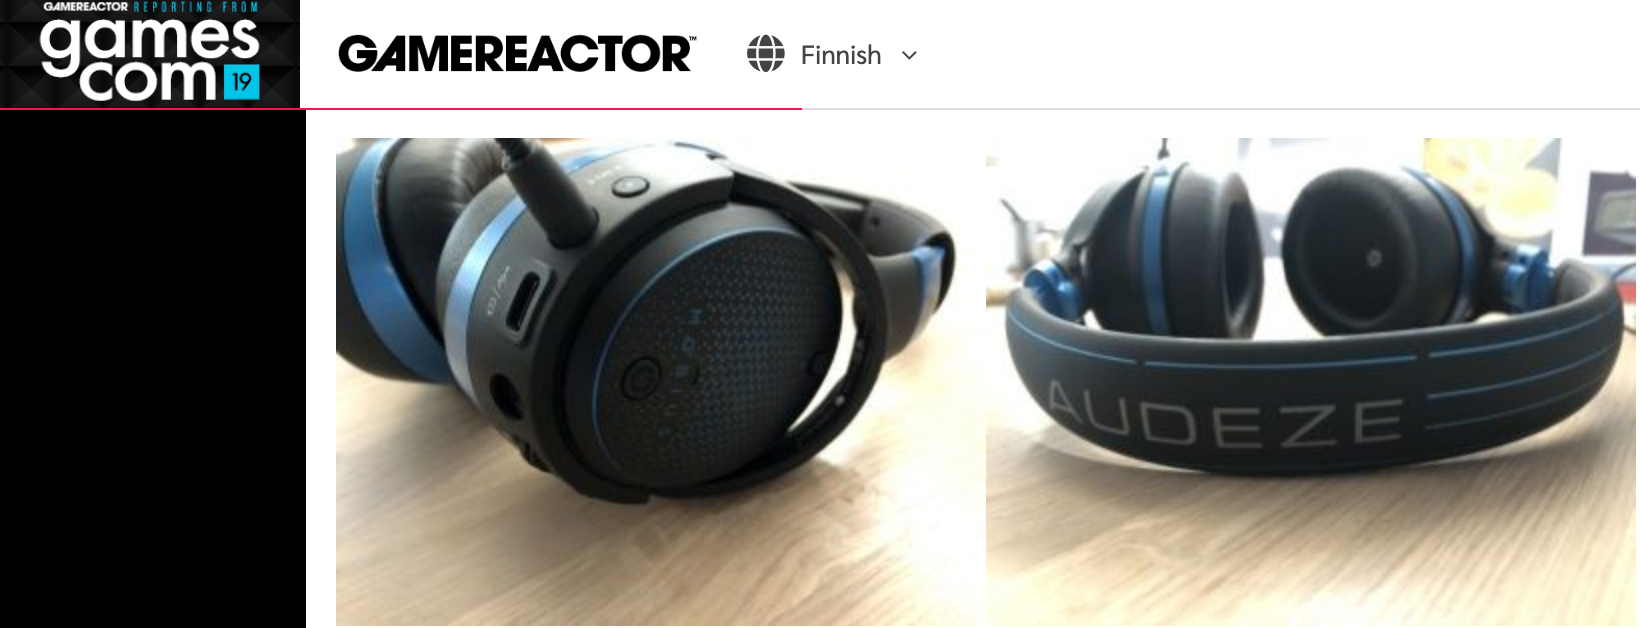 Game Reactor Finalnd reviews the Mobius